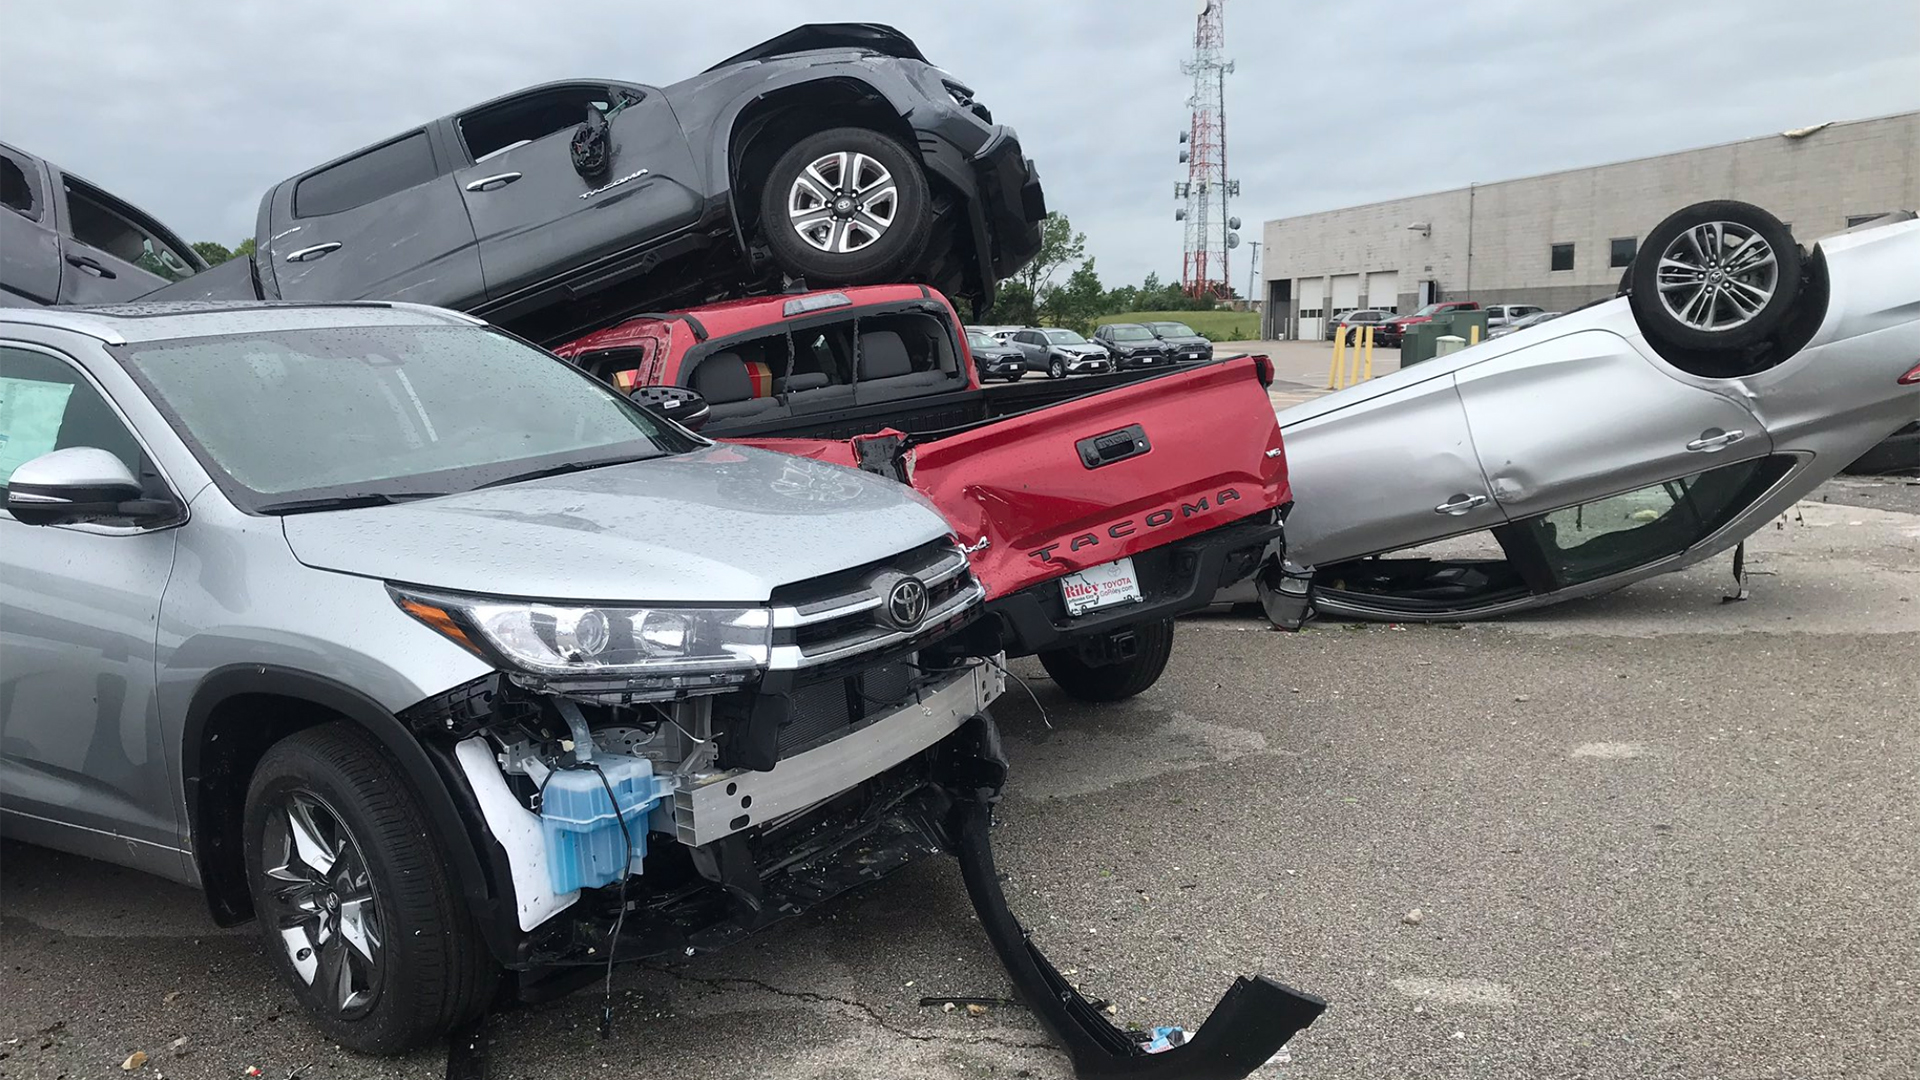 Missouri Tornado Destroys 500 Cars In Direct Hit At Chevrolet And